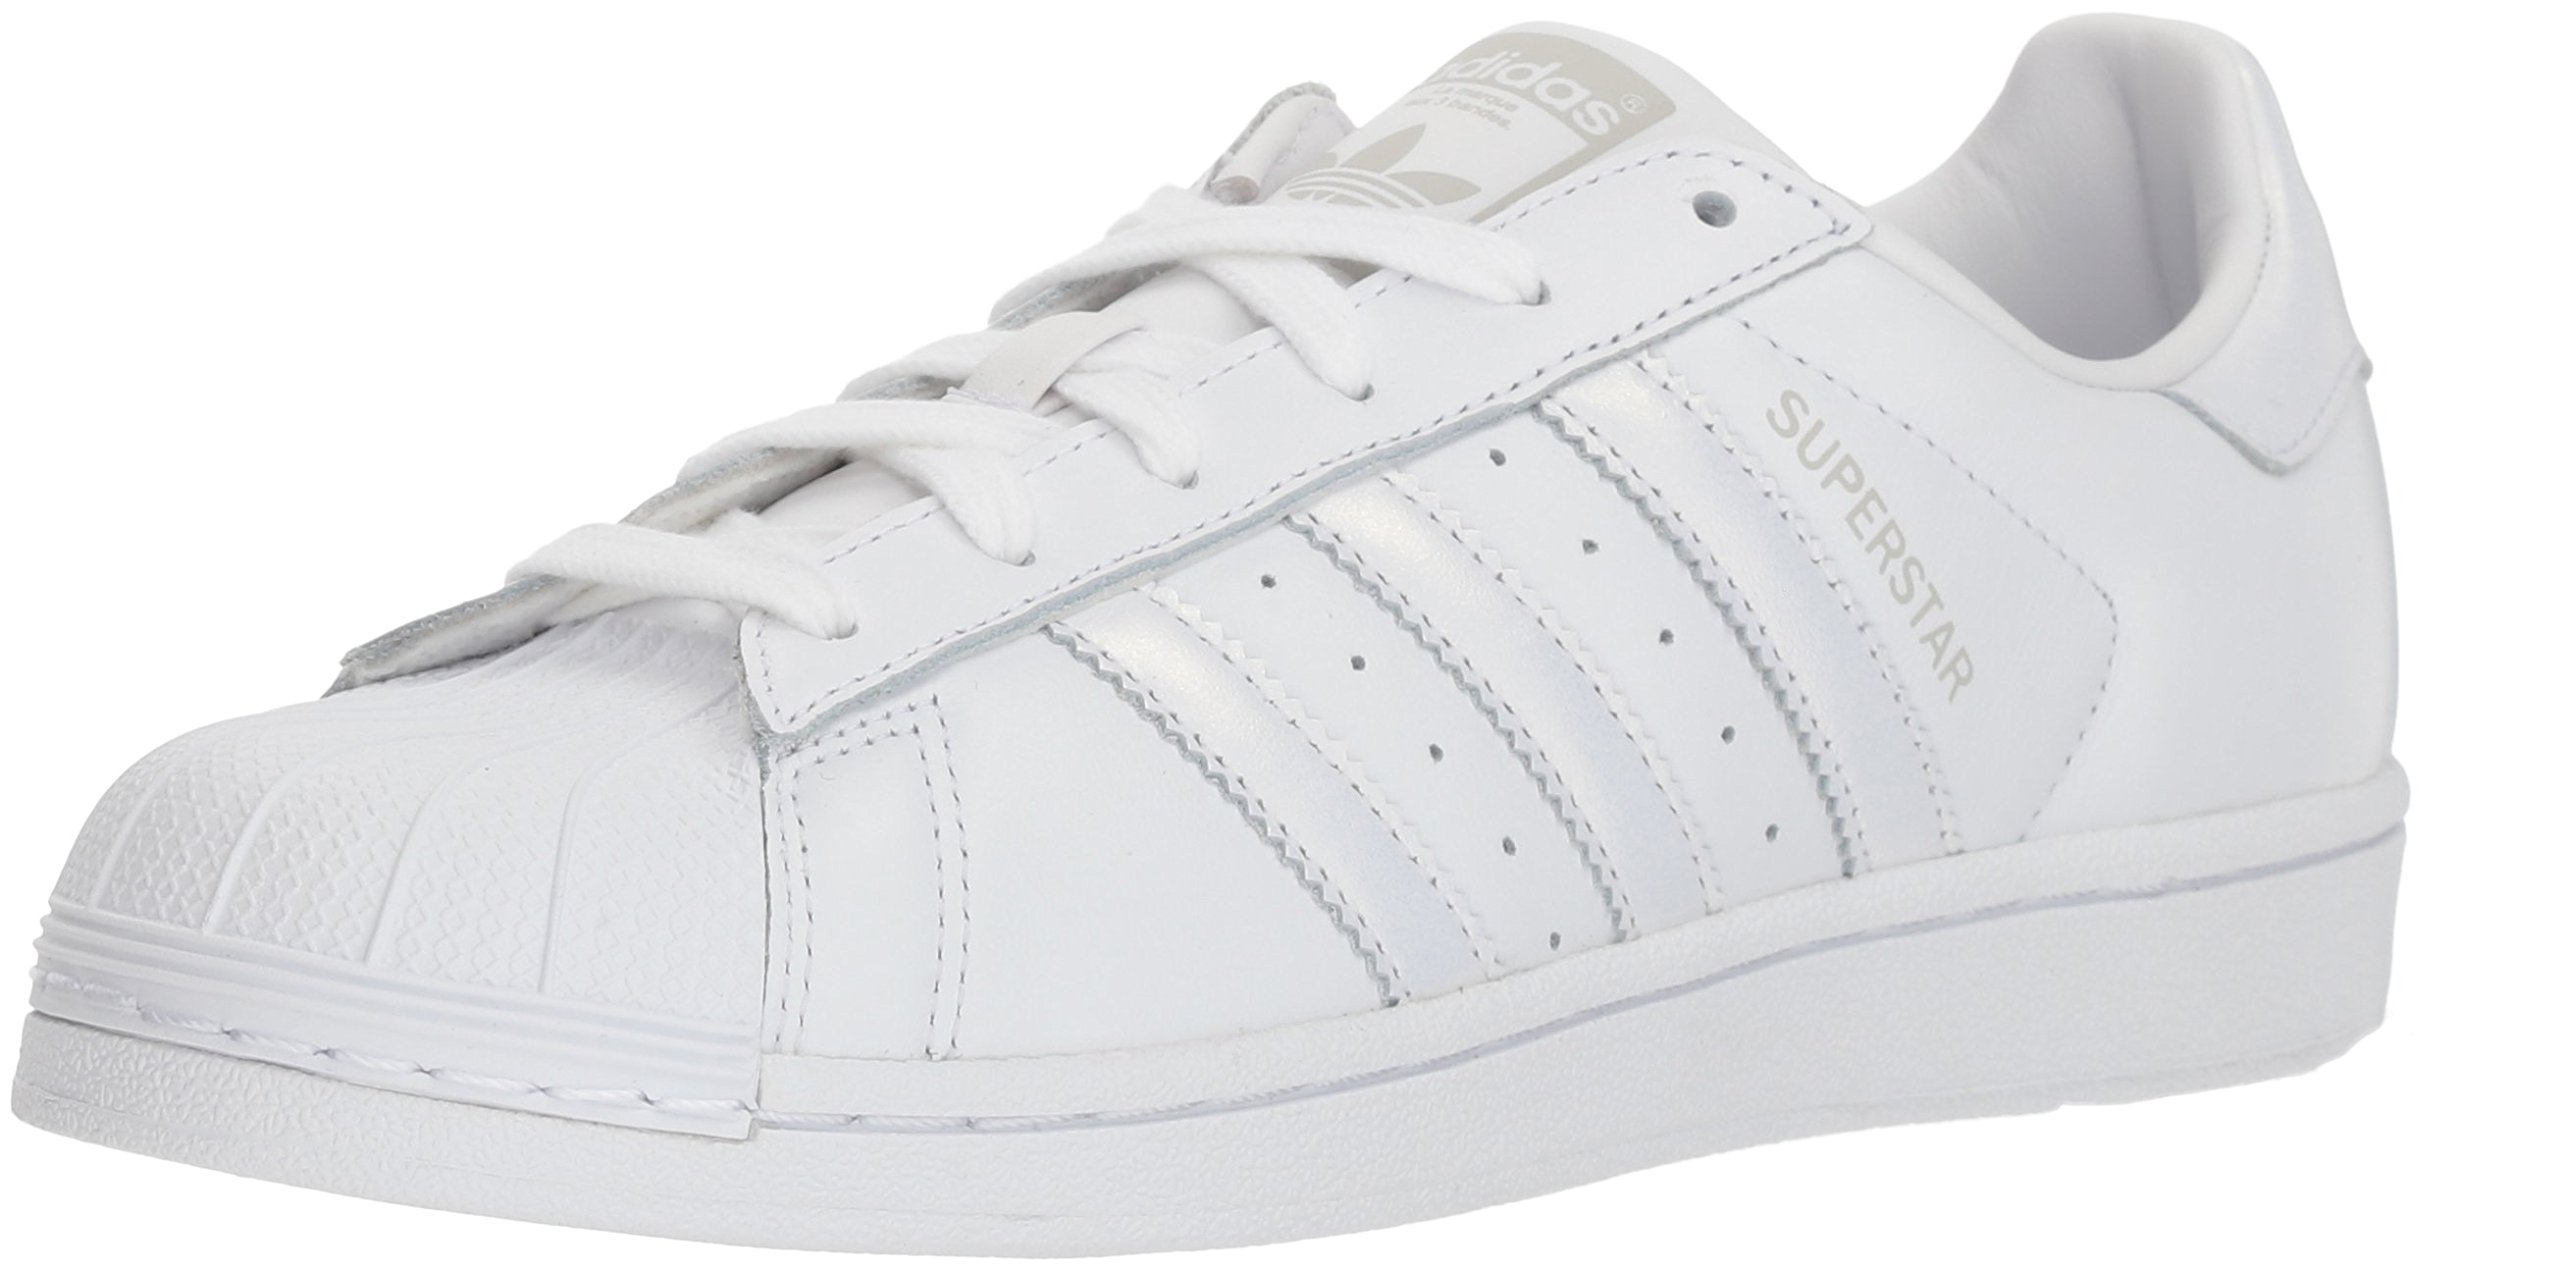 adidas Originals Women's Superstar Sneaker, White/White/Grey, 9 M US